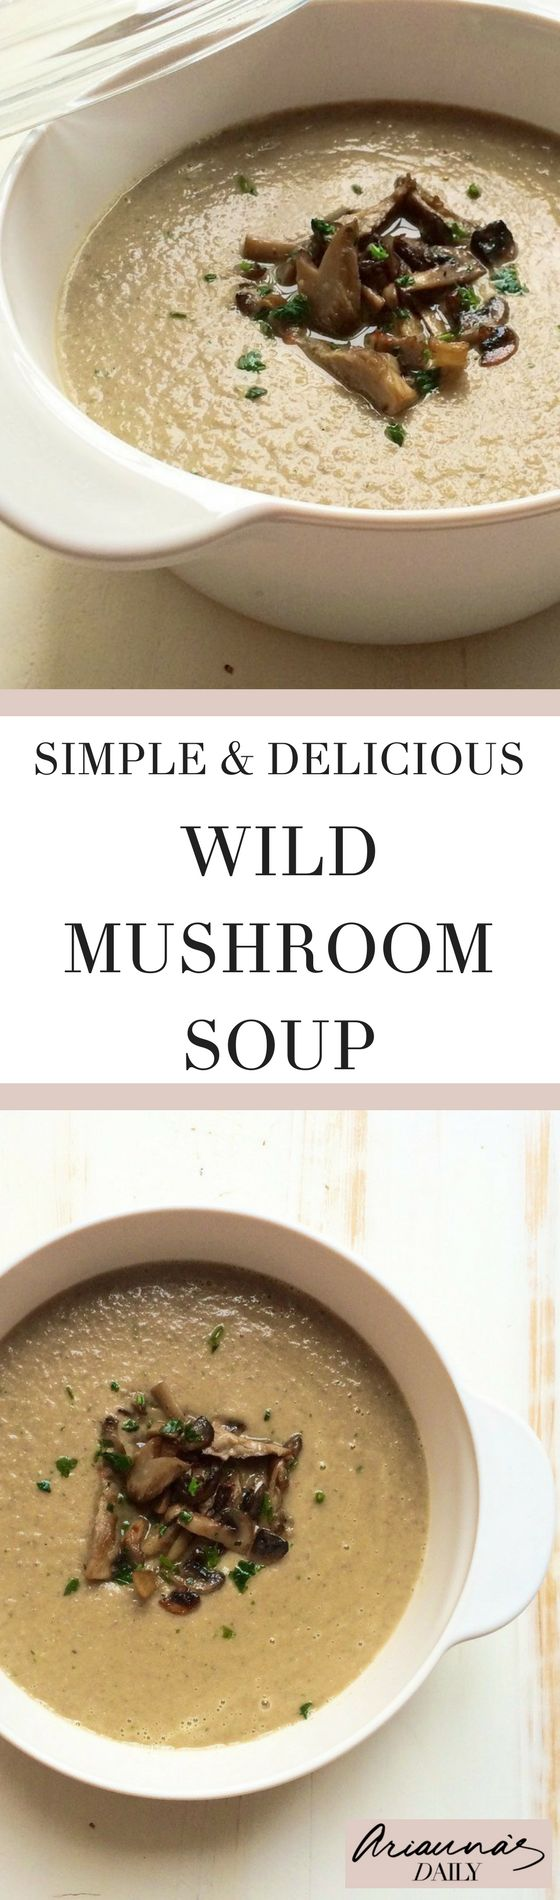 Warming and delicious check out this super easy and simple recipe for wild mushroom soup. Perfect for lunch or a winter meal starter.